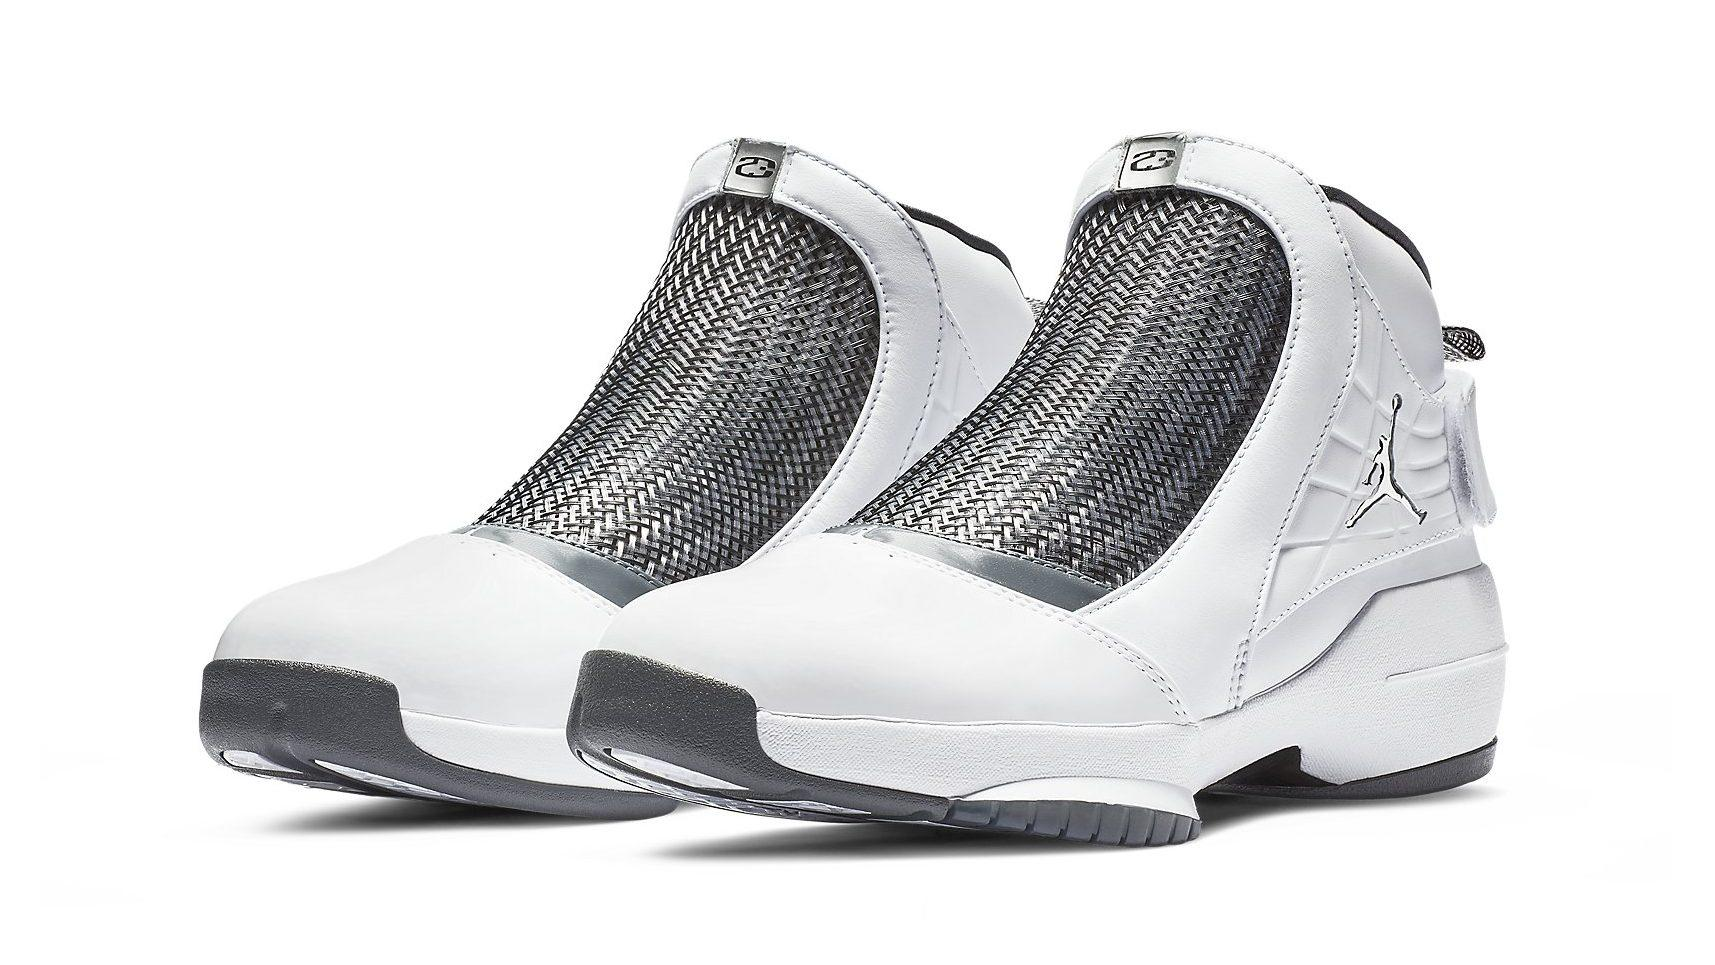 new concept 988d9 a4449 This Classic Air Jordan 19 Gets a Futuristic Twist and Carmelo Anthony  Branding